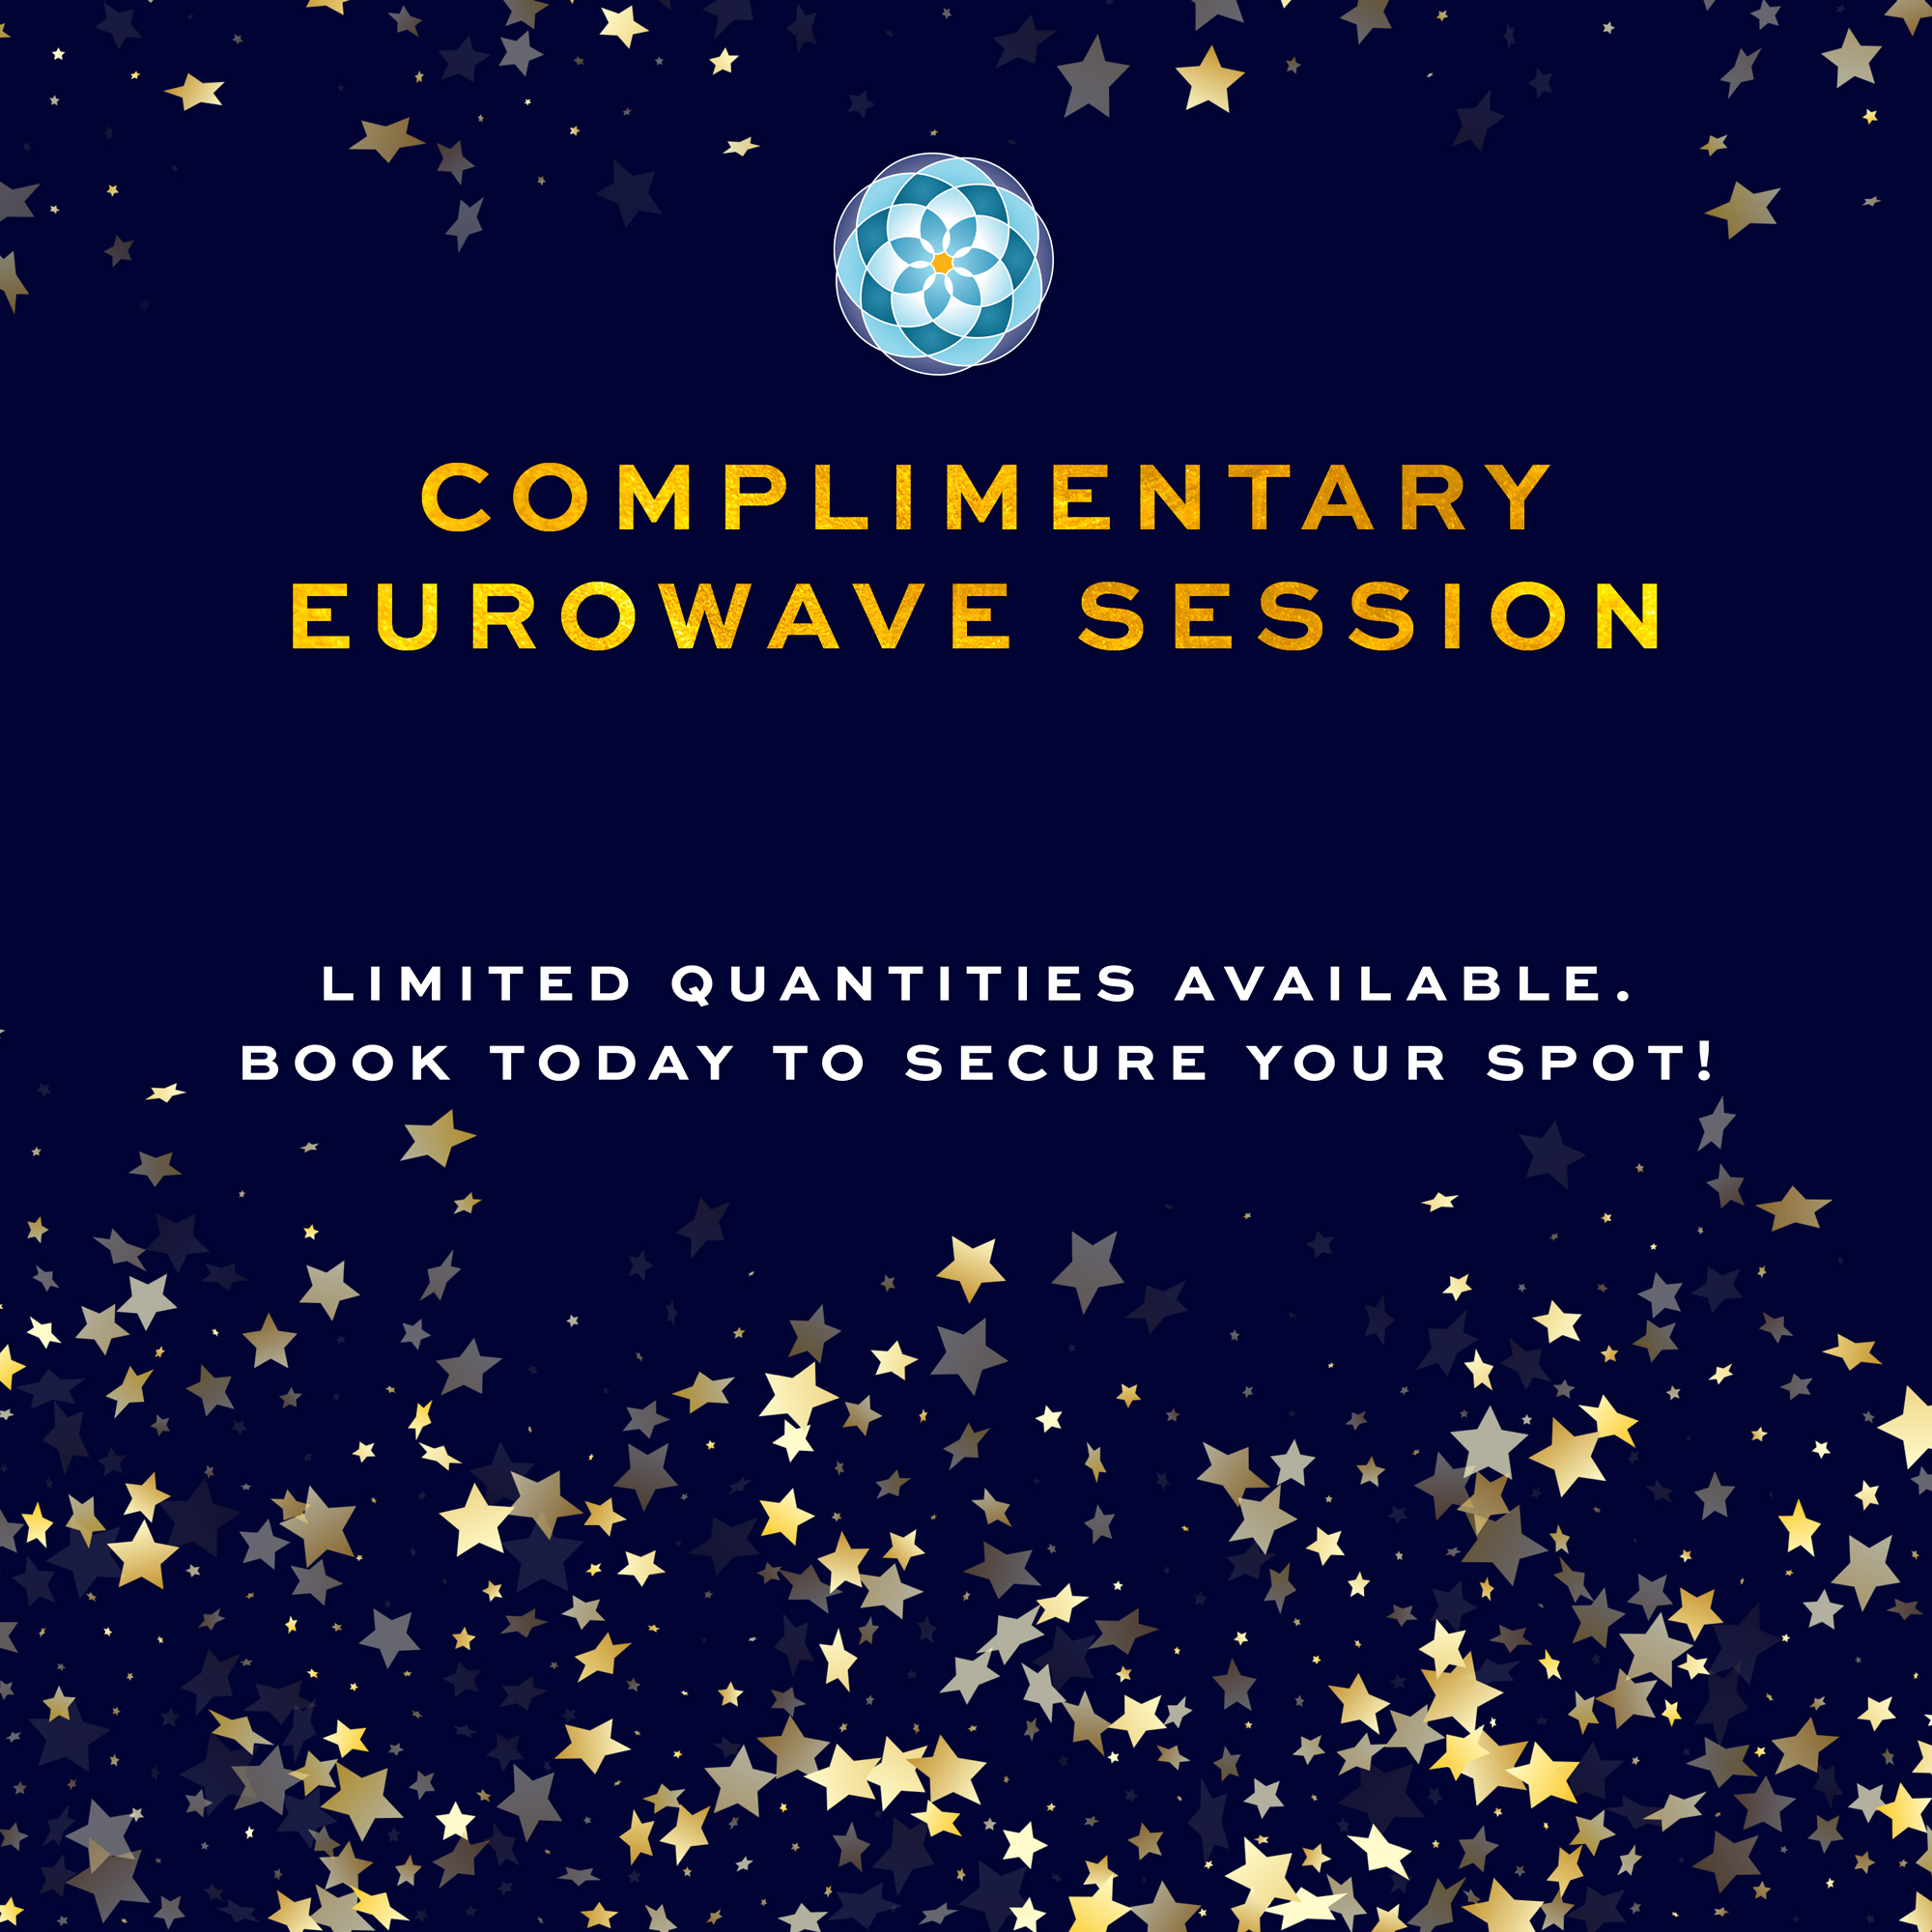 Complimentary Eurowave Treatment Special Offer!